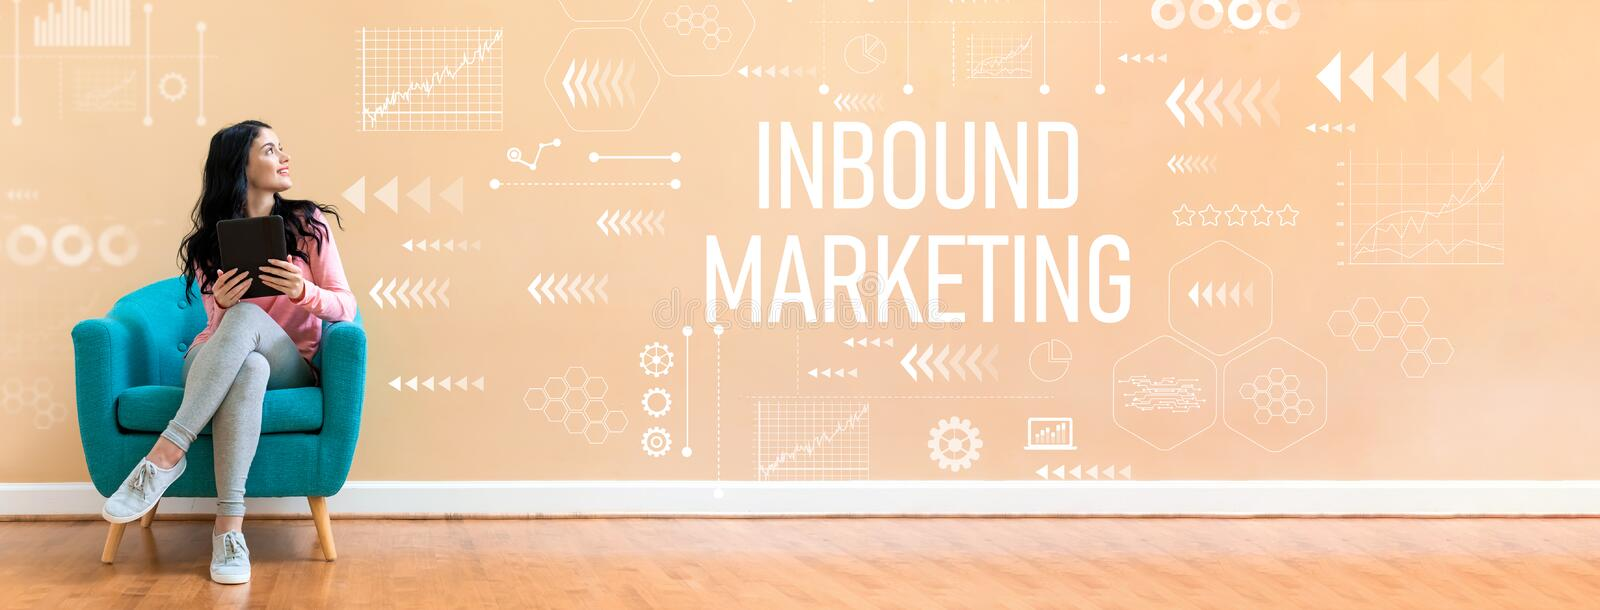 Inbound marketing with woman using a tablet stock image